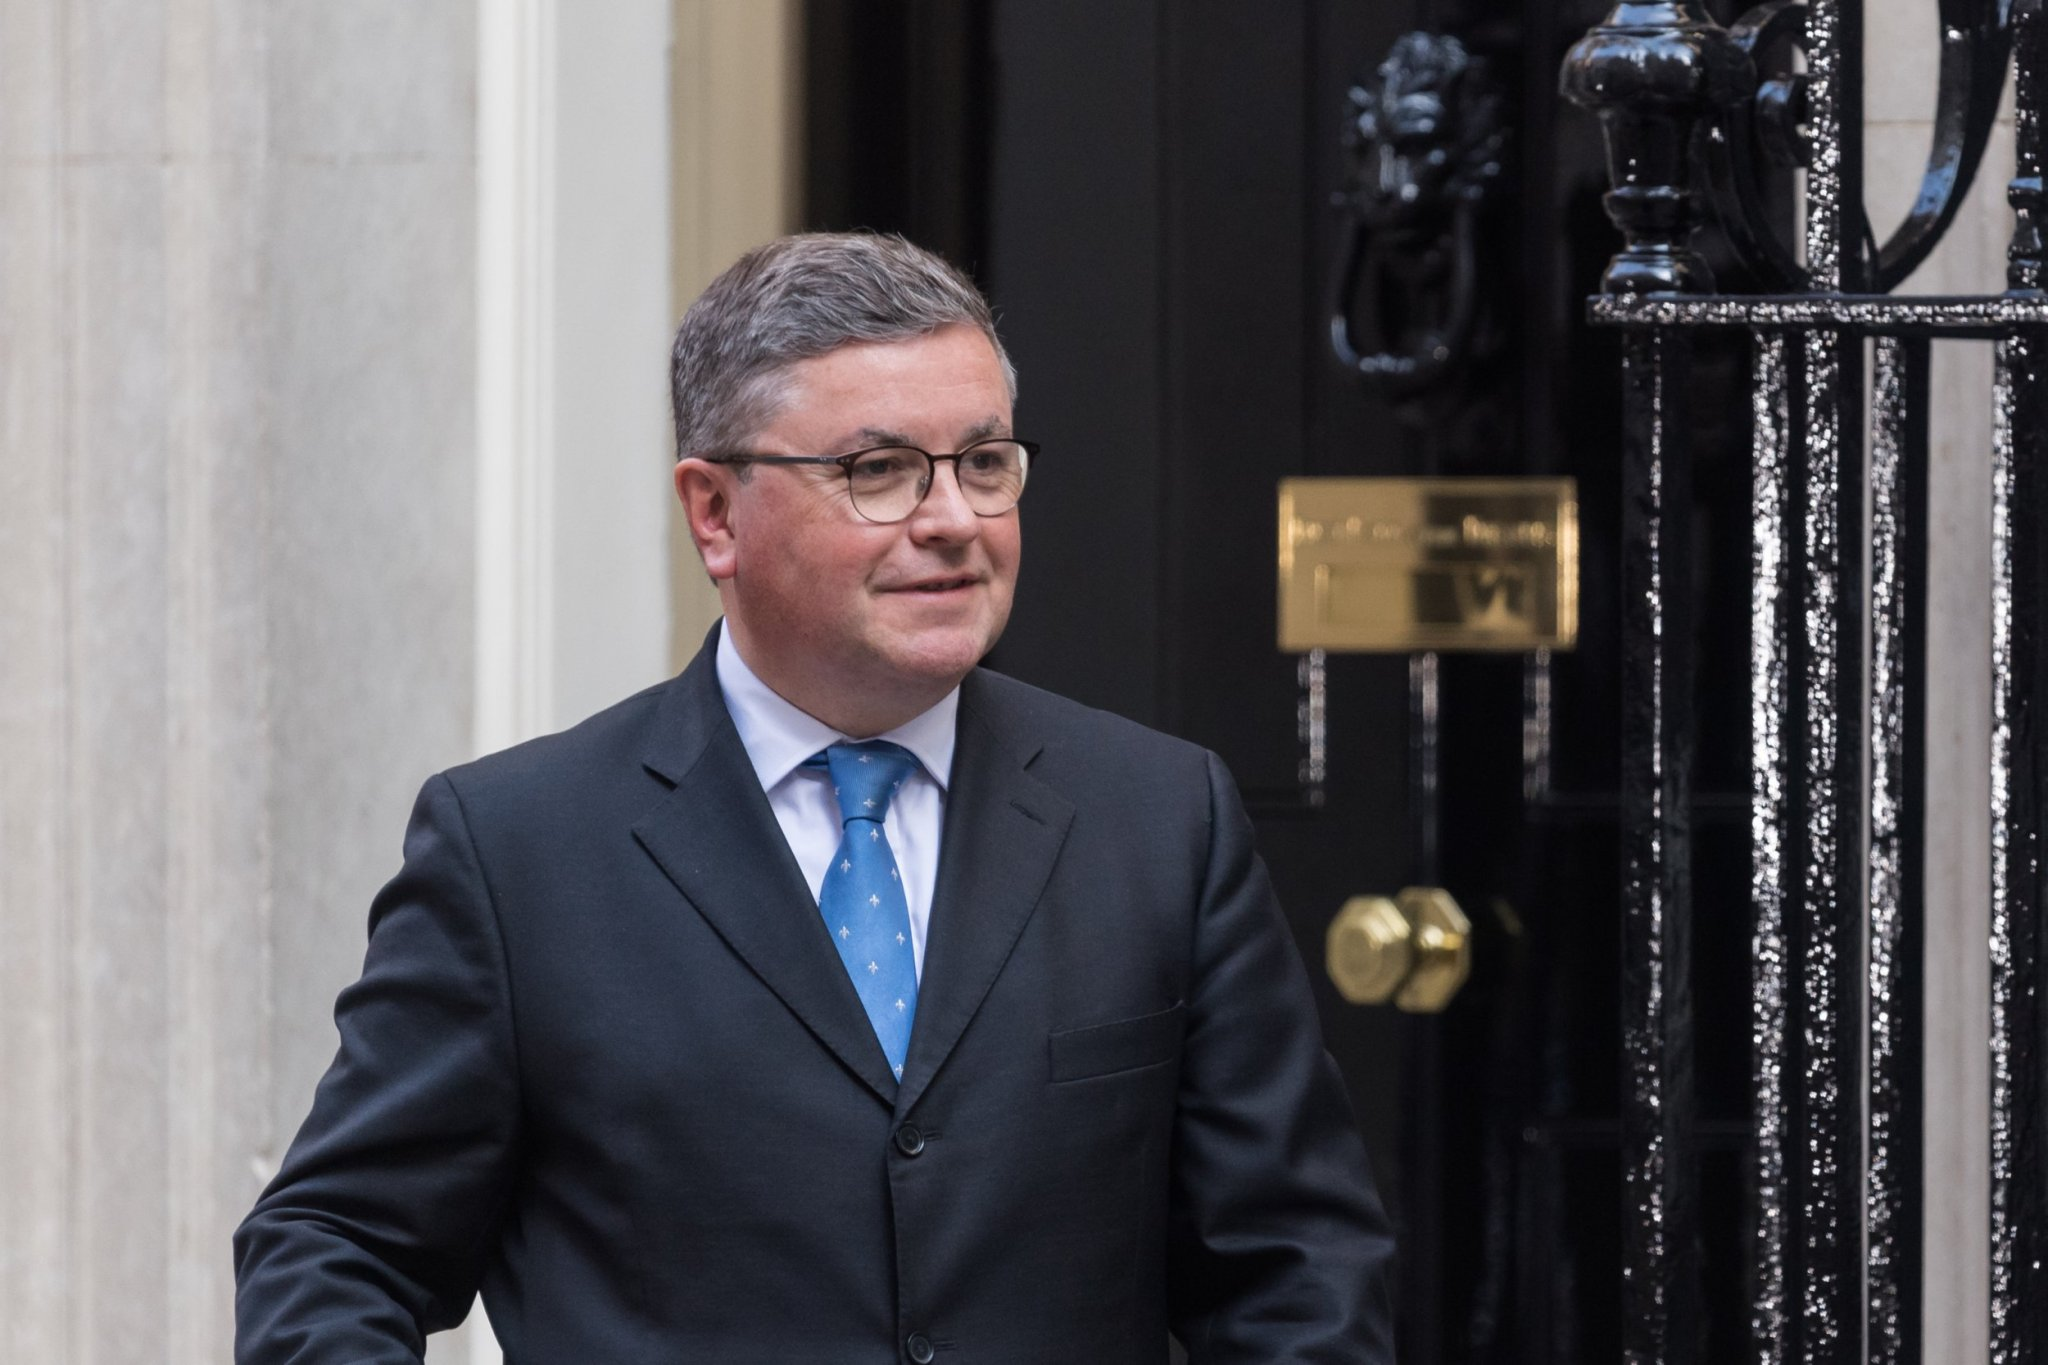 Robert Buckland sacked as Justice Secretary in cabinet reshuffle after 7 years in Government